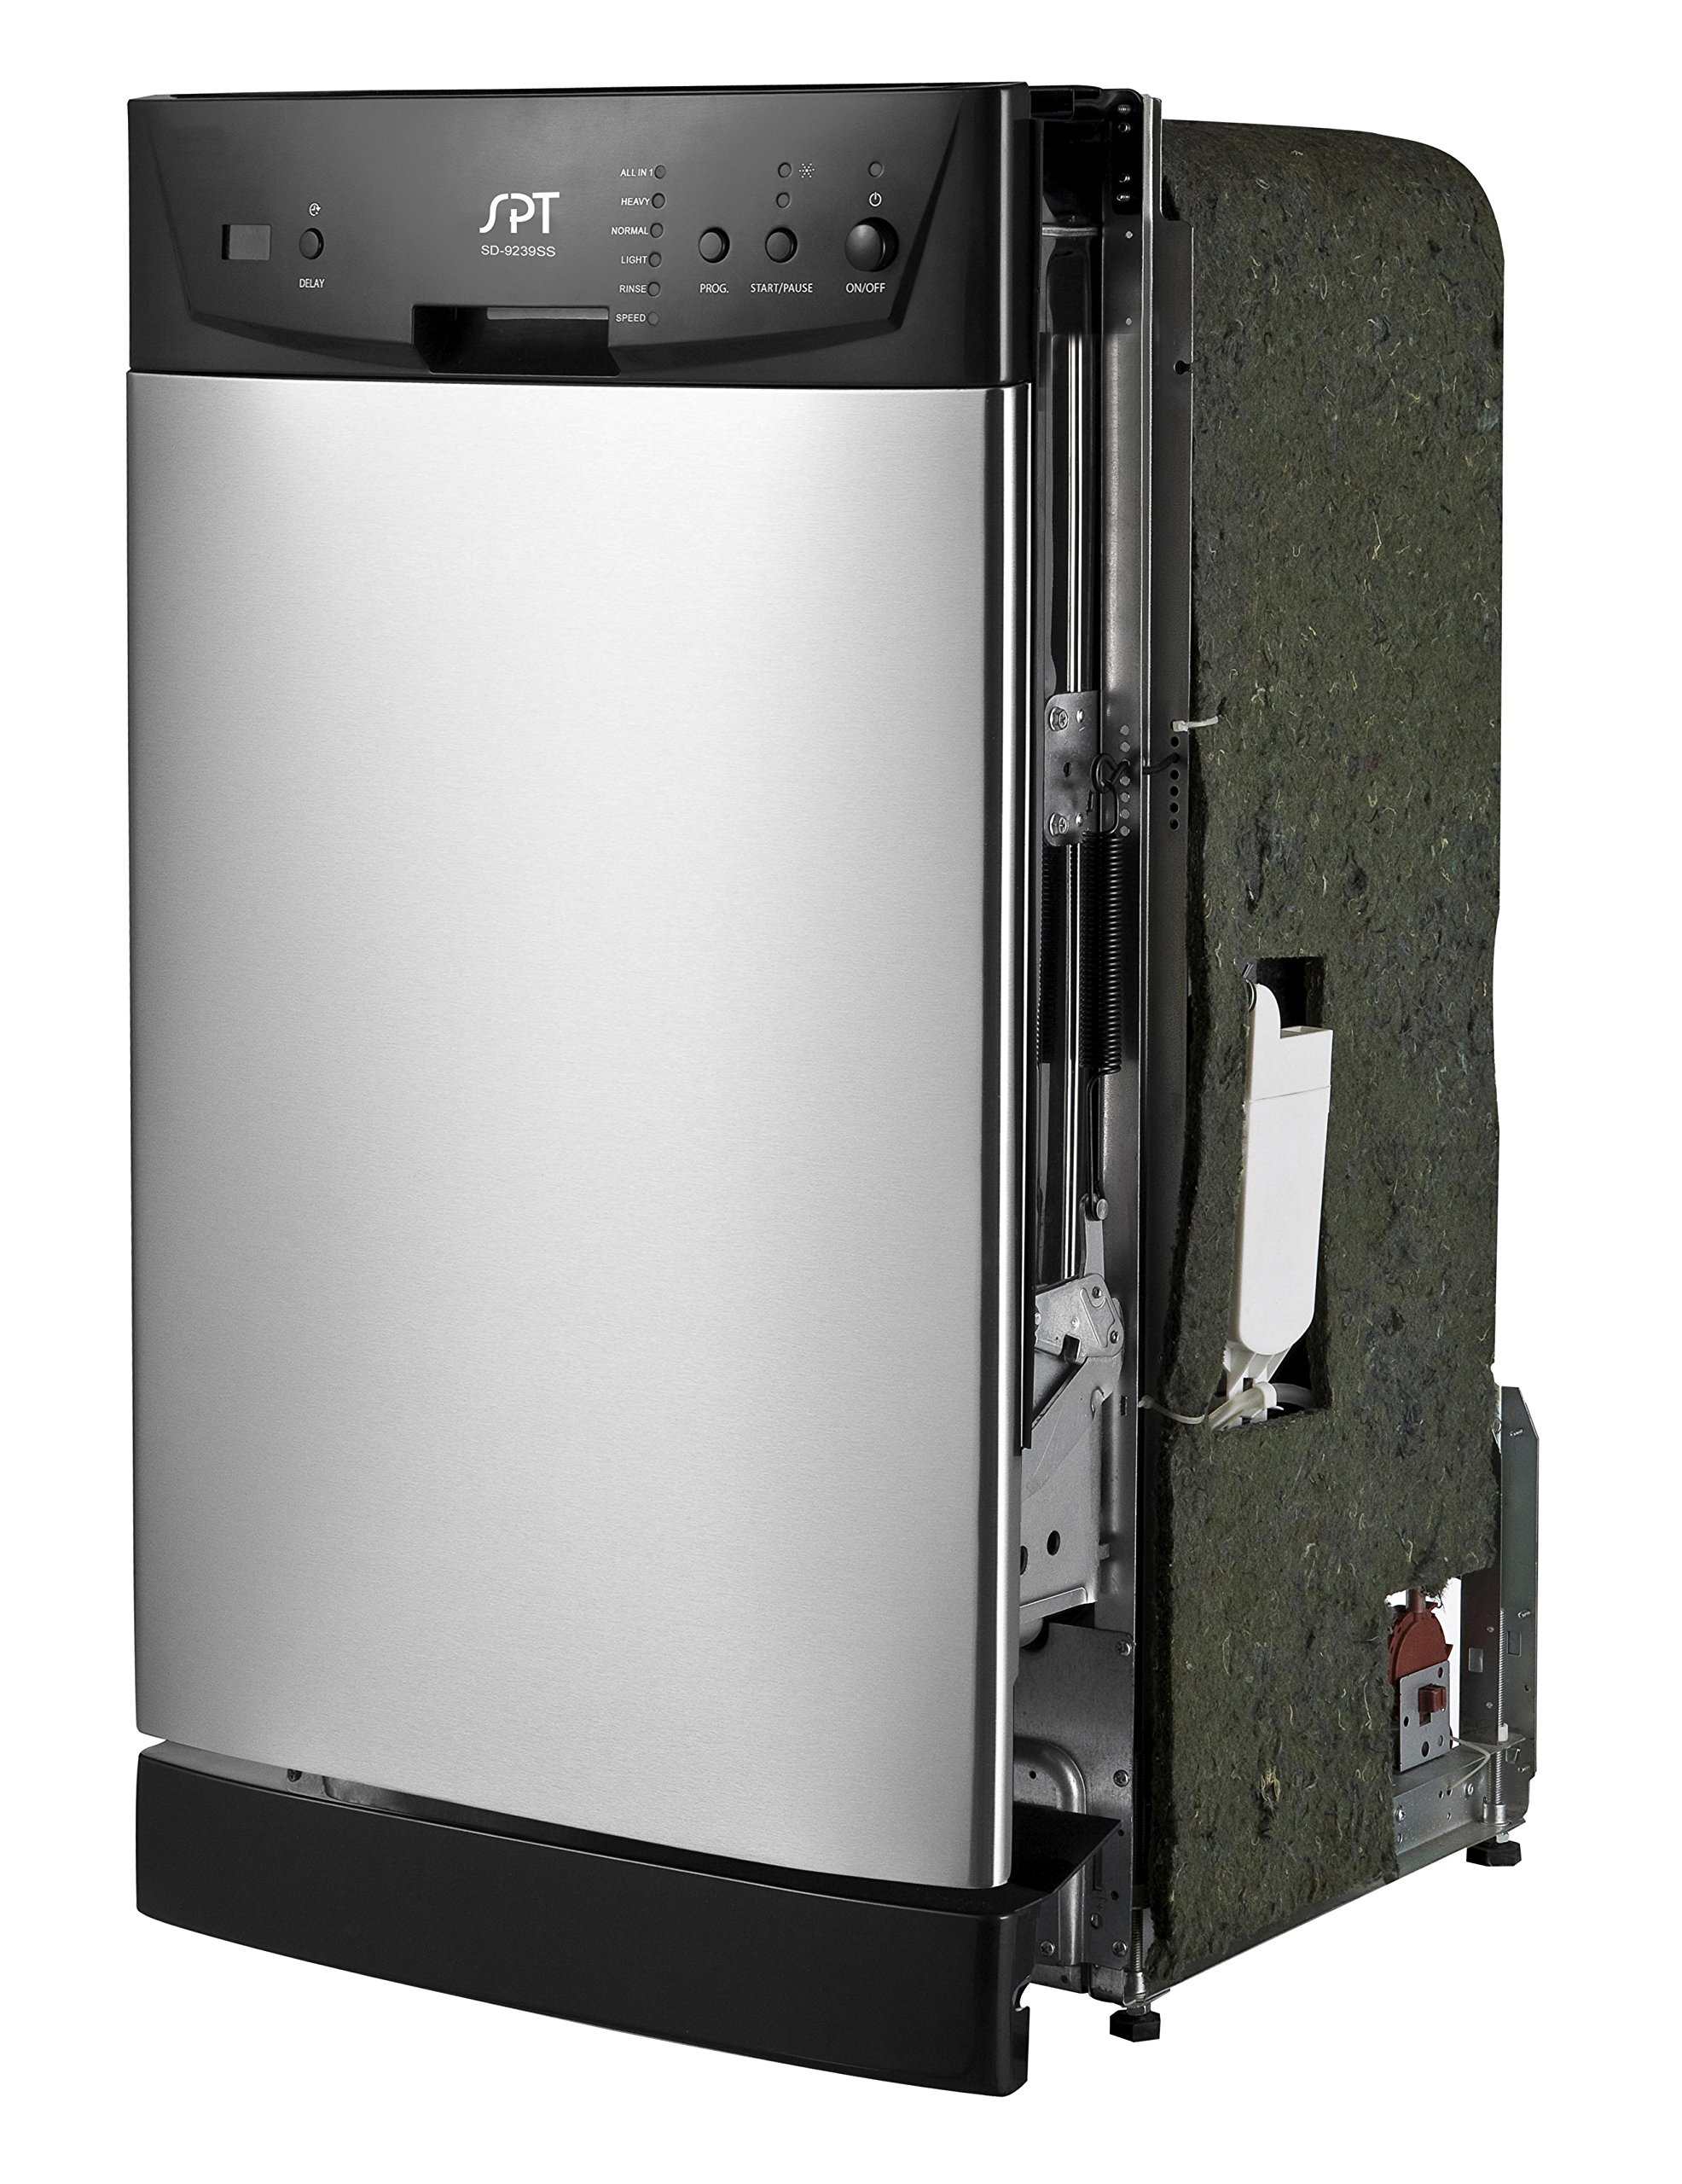 SPT SD-9252SS Energy Star 18'' Built-In Dishwasher, Stainless Steel by SPT